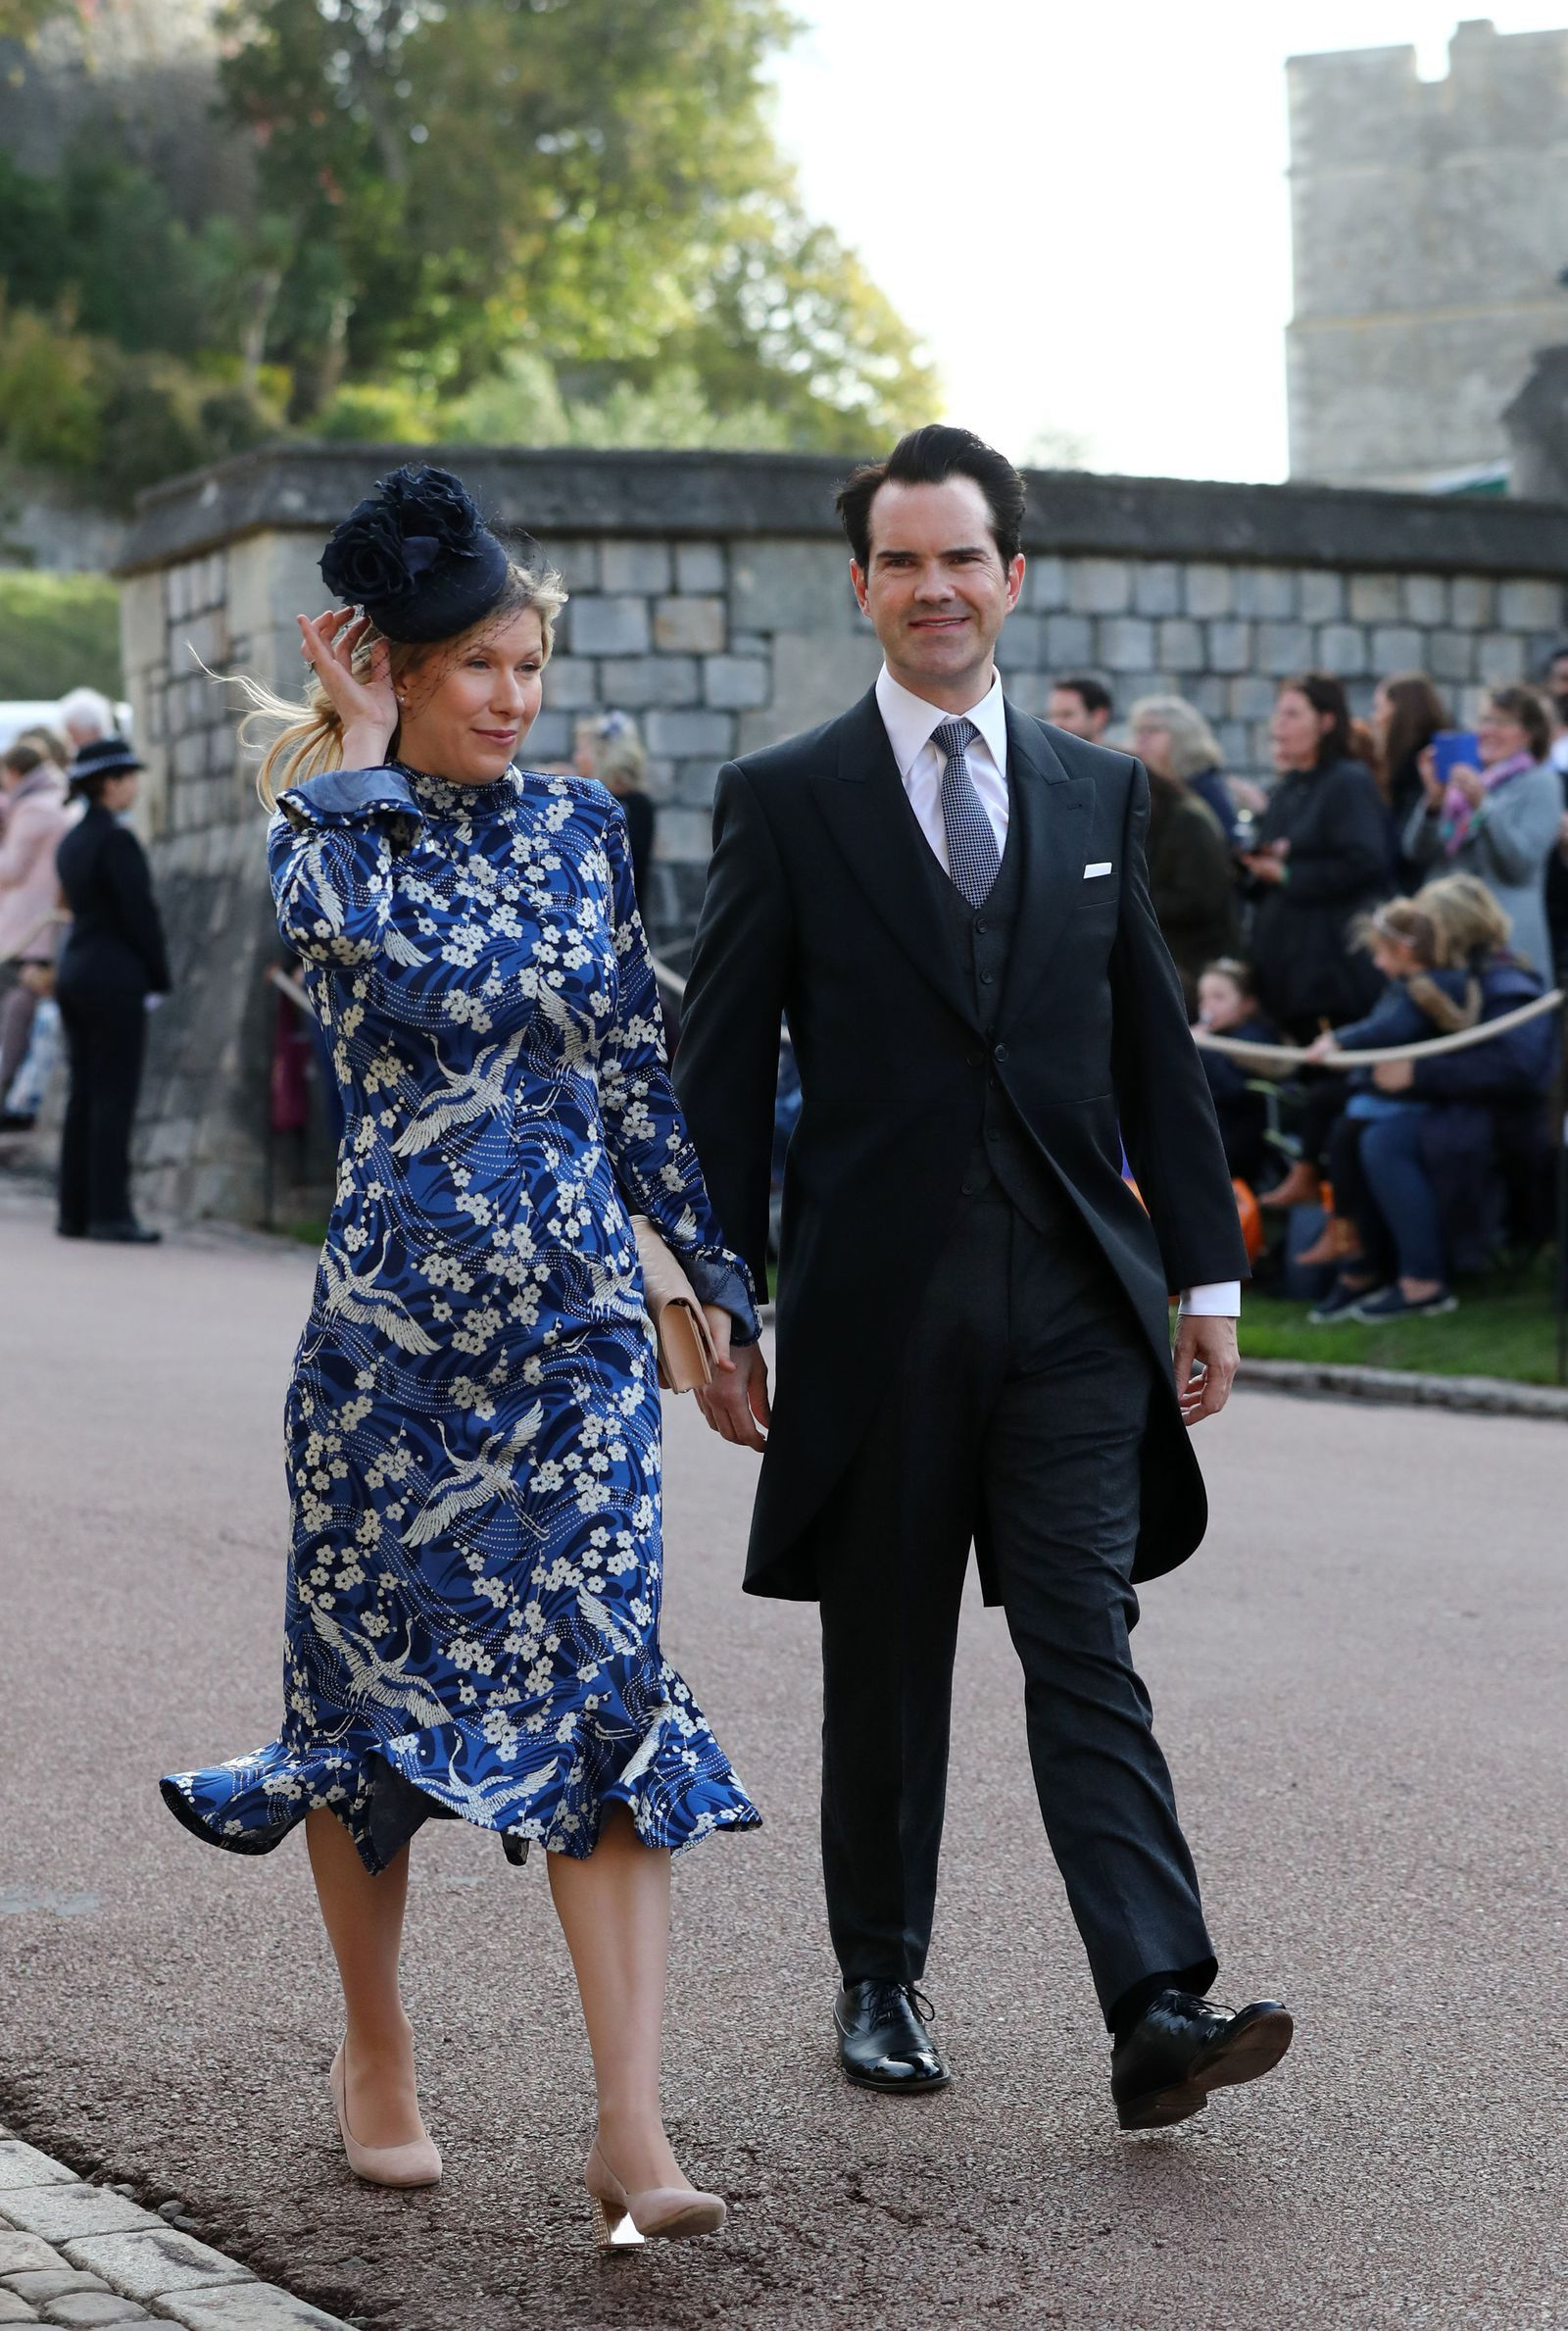 The Best Dressed Guests At Princess Eugenie S Wedding Eugenie Wedding Celebrity Dresses Princess Eugenie Jack Brooksbank Thanks for the awesome creativity and great work! eugenie wedding